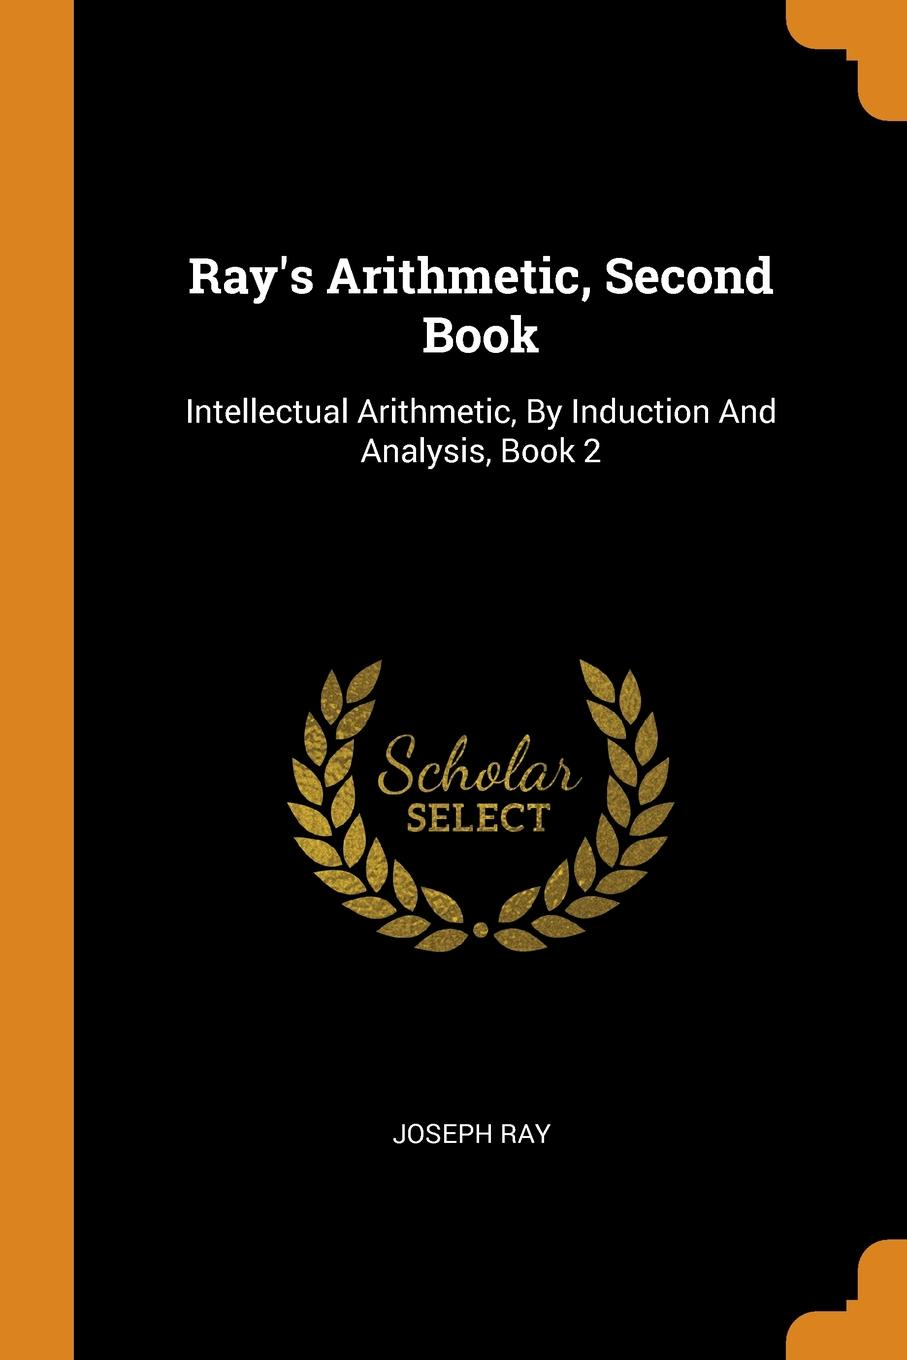 Joseph Ray Ray.s Arithmetic, Second Book. Intellectual Arithmetic, By Induction And Analysis, Book 2